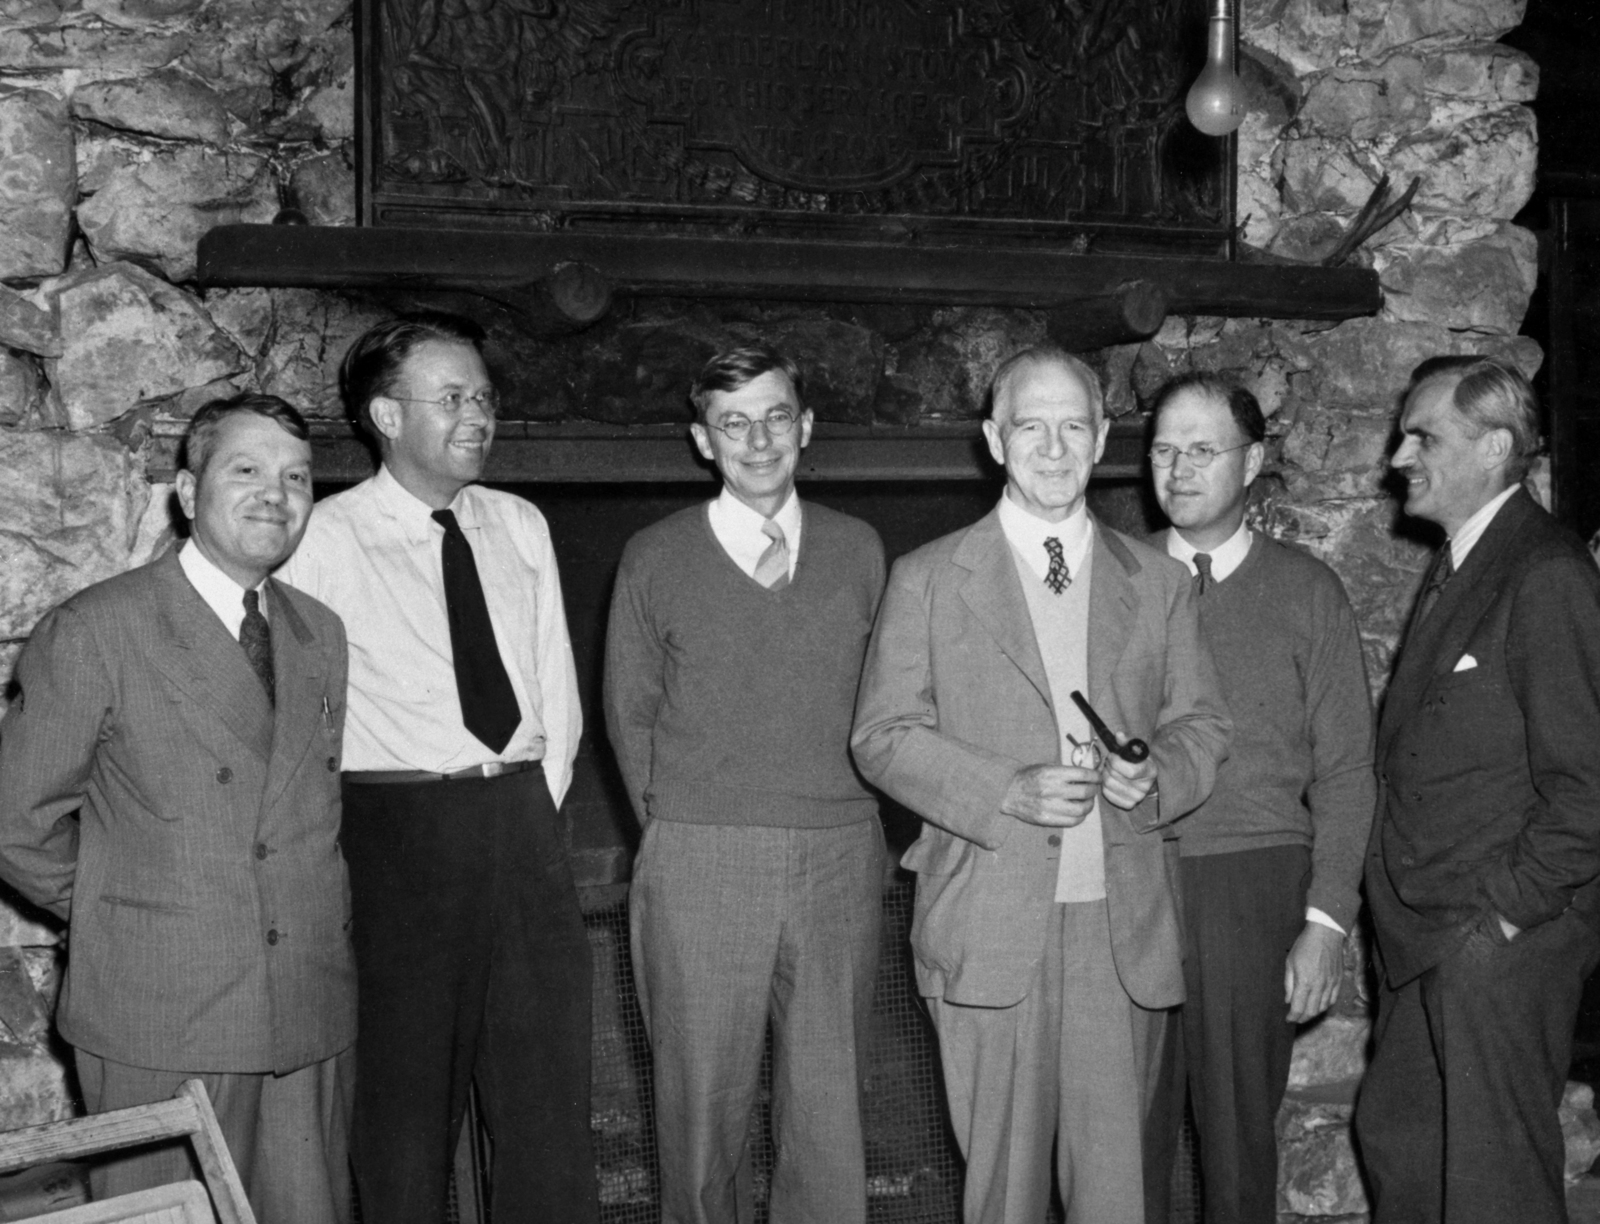 Office of Scientific Research and Development (OSRD) party, S-1 committee at Bohemian Grove, September 13, 1942. Left to right: Harold C. Urey, Ernest O. Lawrence, James B. Conant, Lyman. J. Briggs, E. V. Murphree, and A. H. Compton. Morgue 1958-8 (P-69) [Photographer: Donald Cooksey]